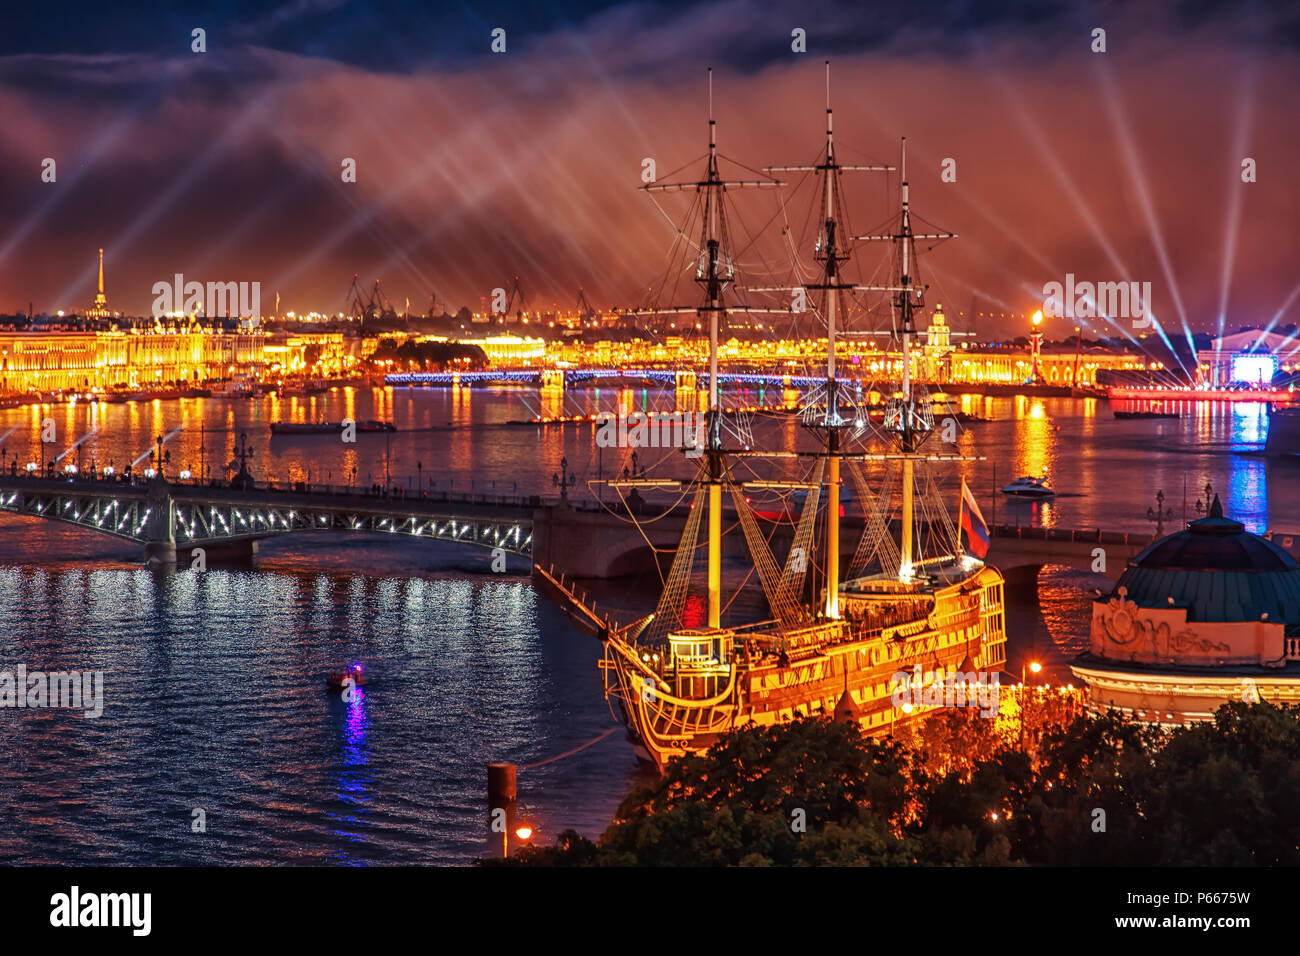 Scarlet Sails celebration in St Petersburg. Traditional holiday of graduates. - Stock Image